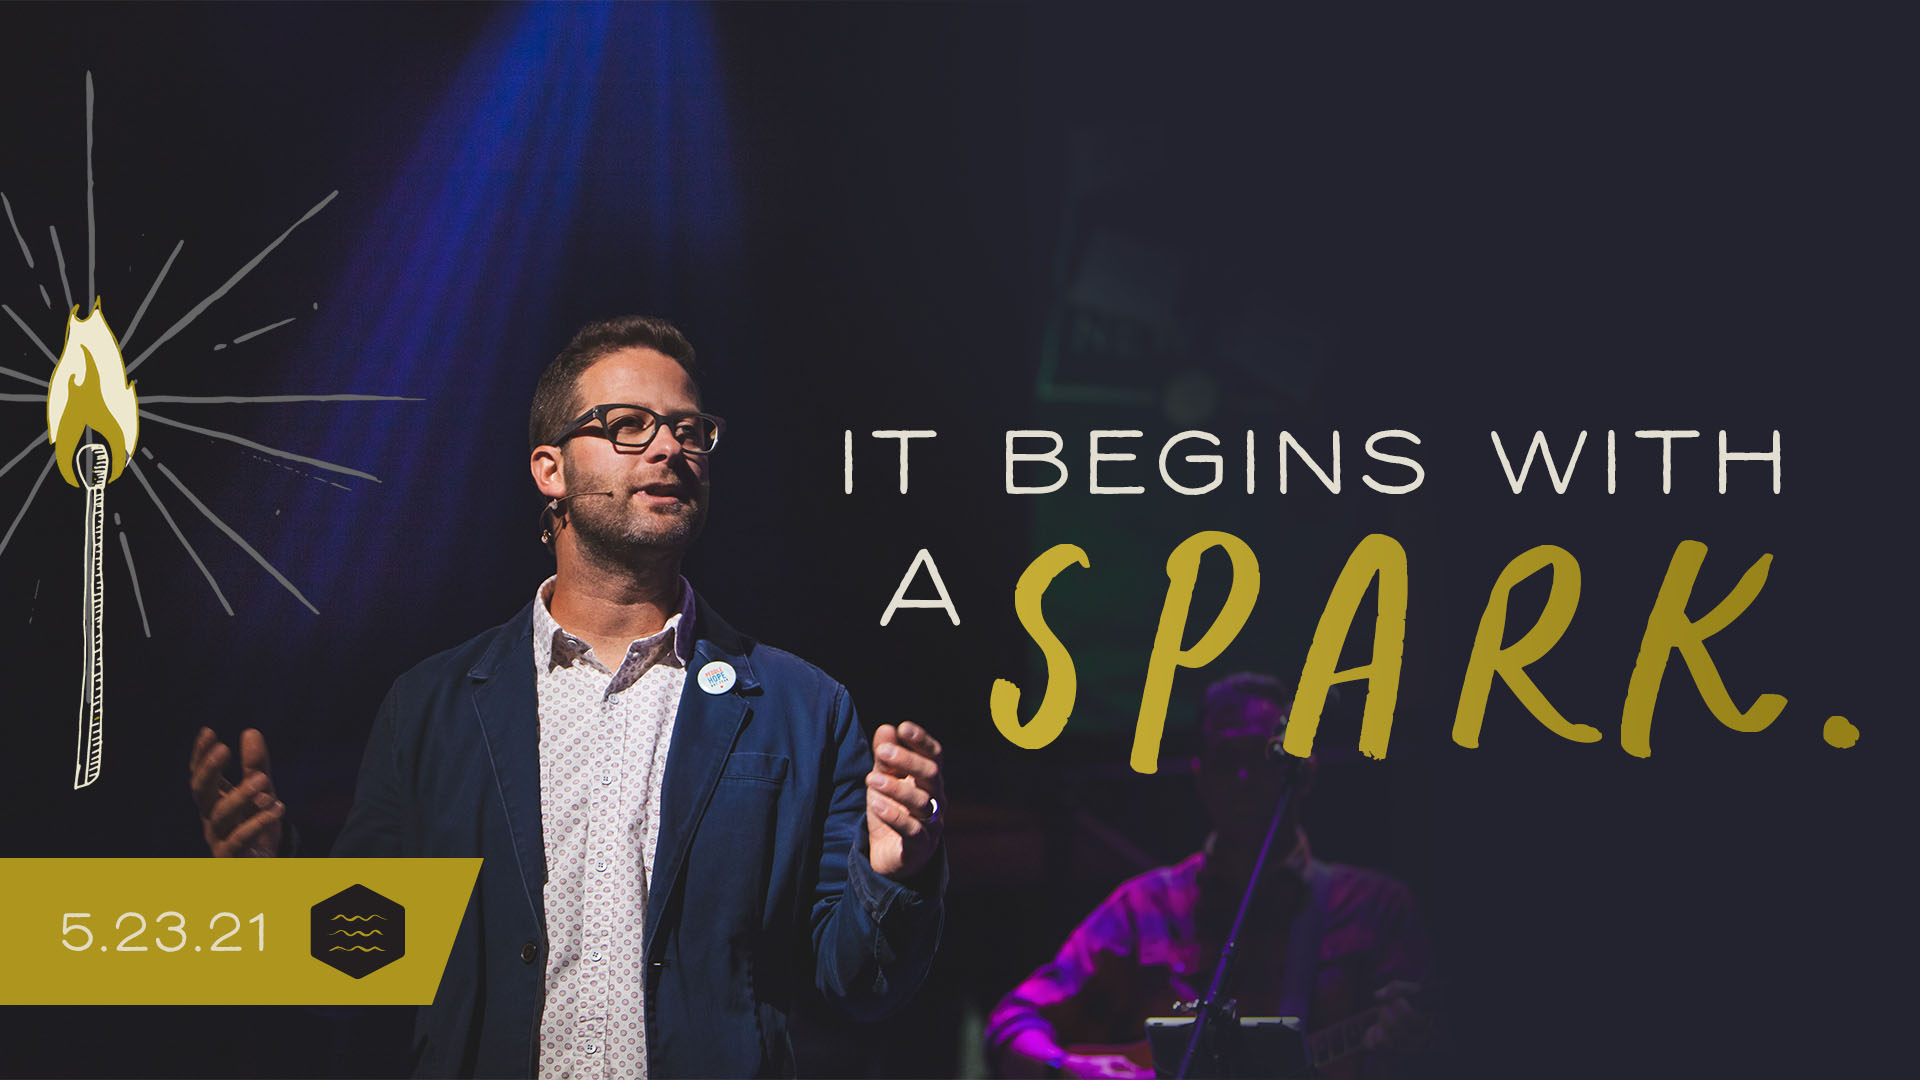 It Begins with a Spark